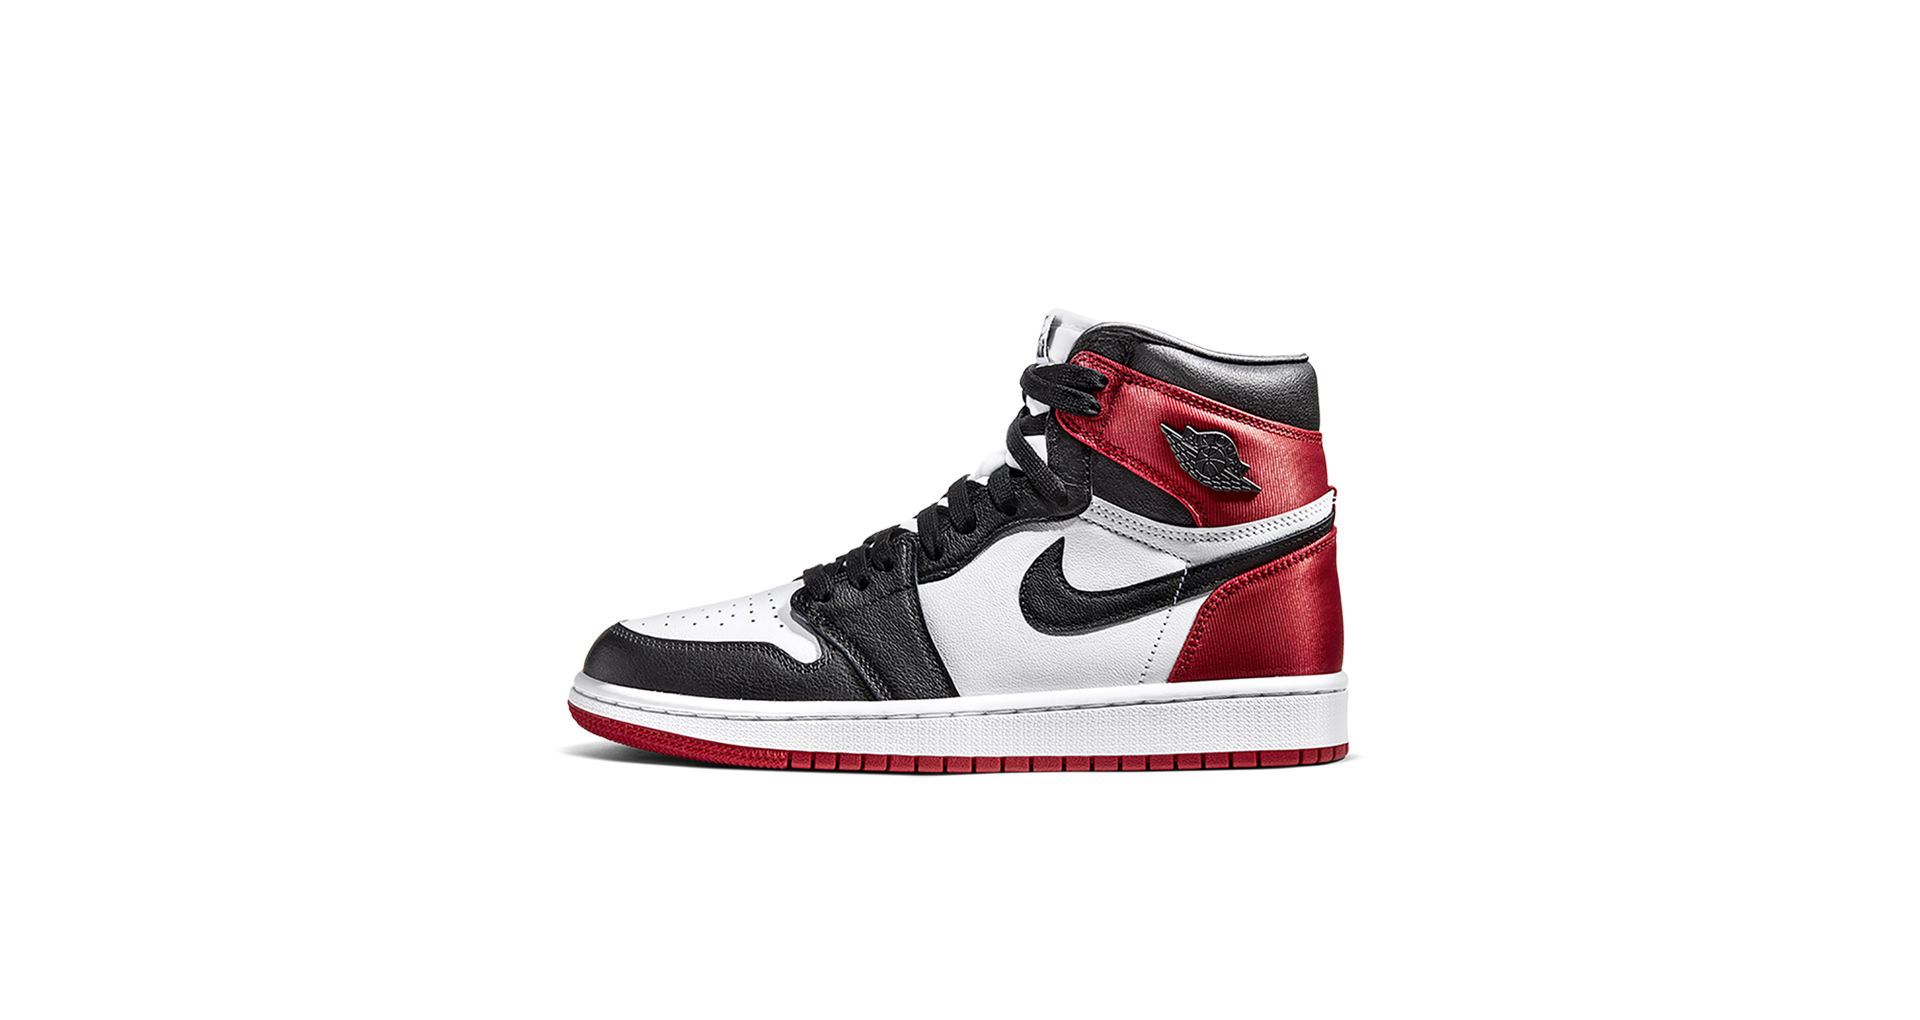 brand new 0e789 24d30 Women's Air Jordan I 'Black Toe' Release Date. Nike⁠+ SNKRS